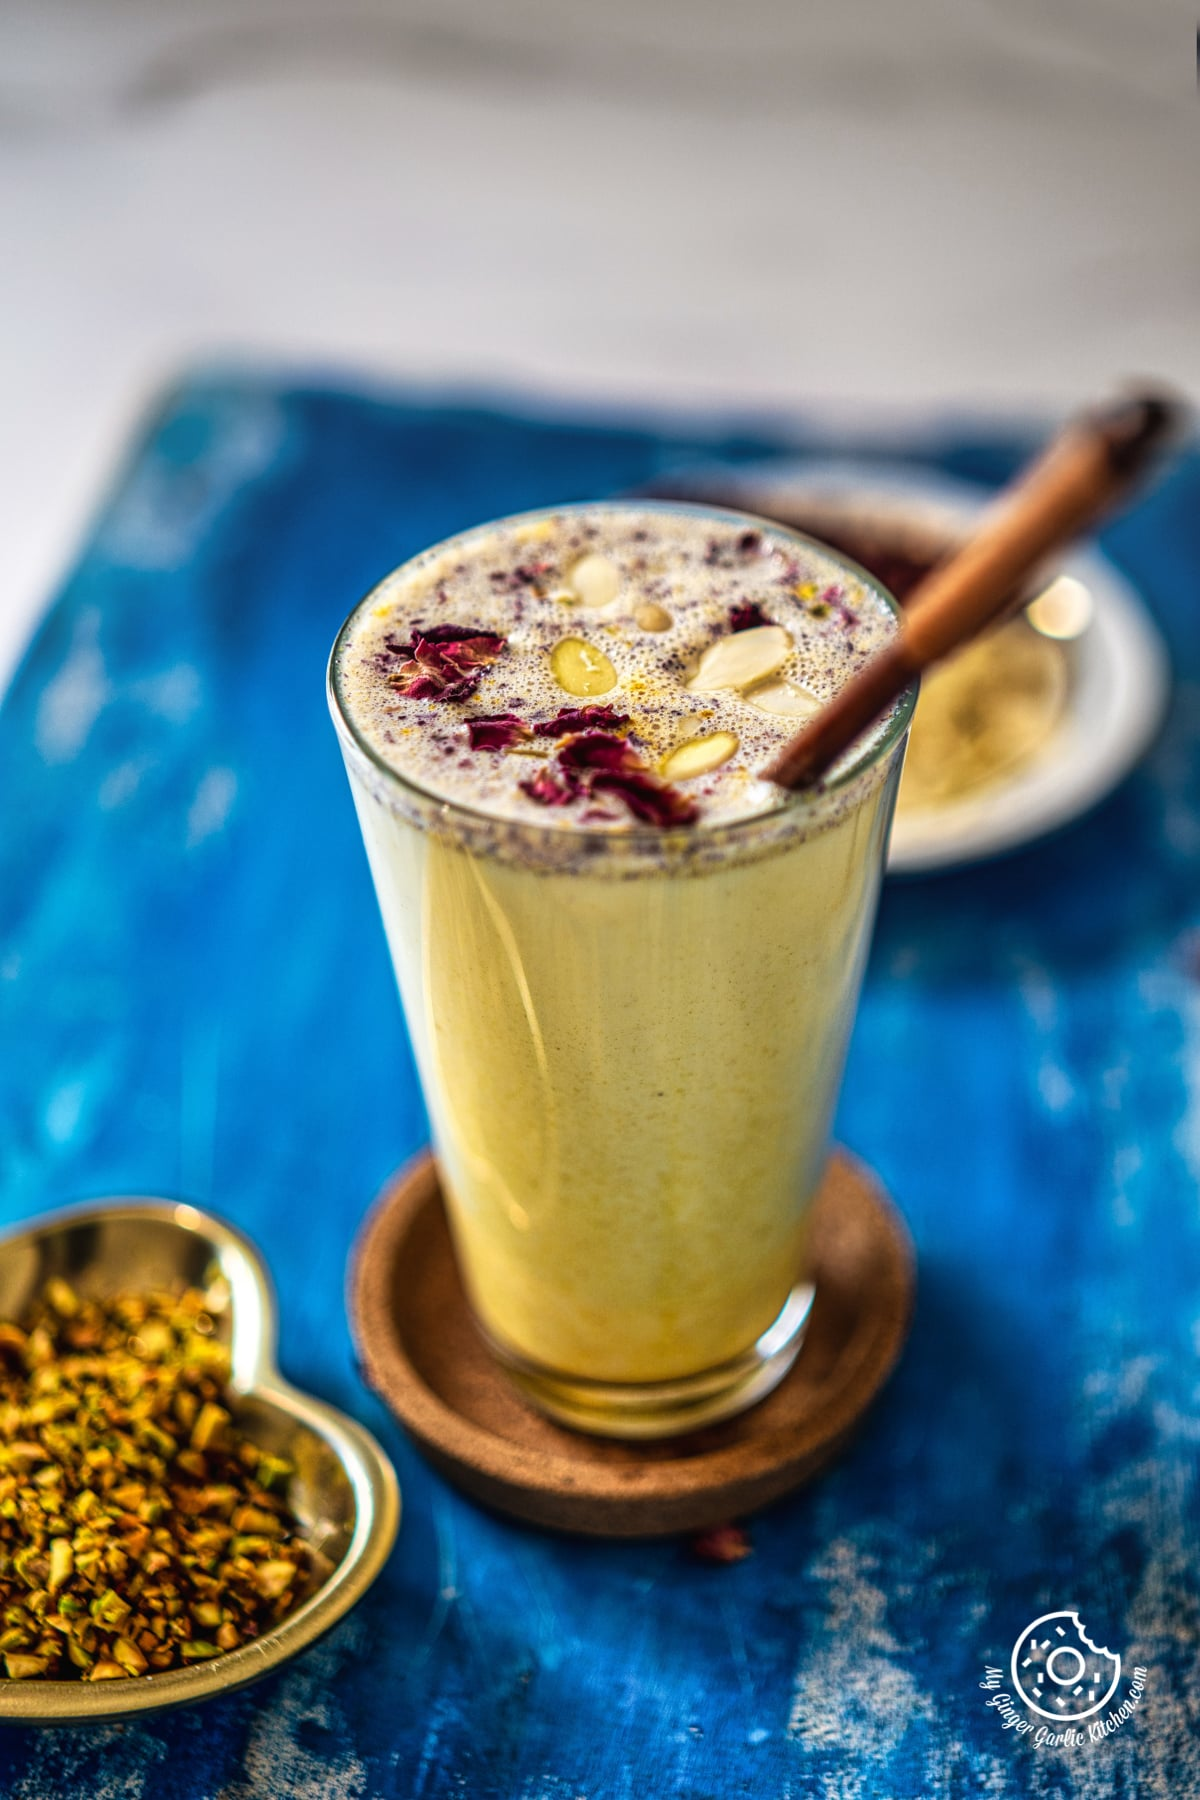 thandai milkshake topped with dried rose petals in a transparent glass kept on a wooden coaster